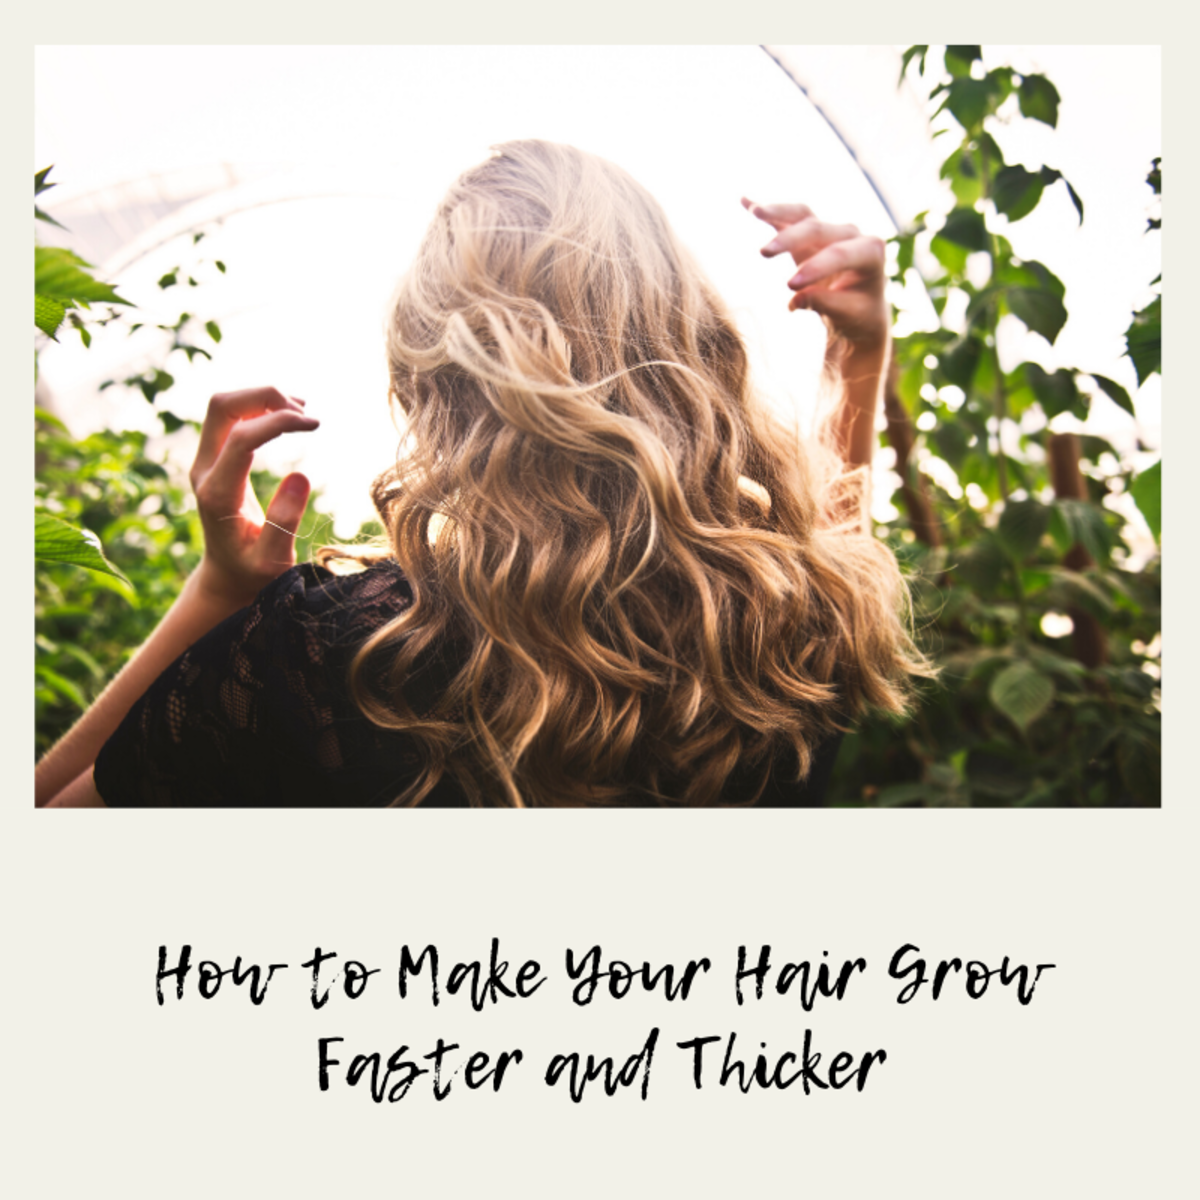 These tips will help you keep your hair looking great during trying times.